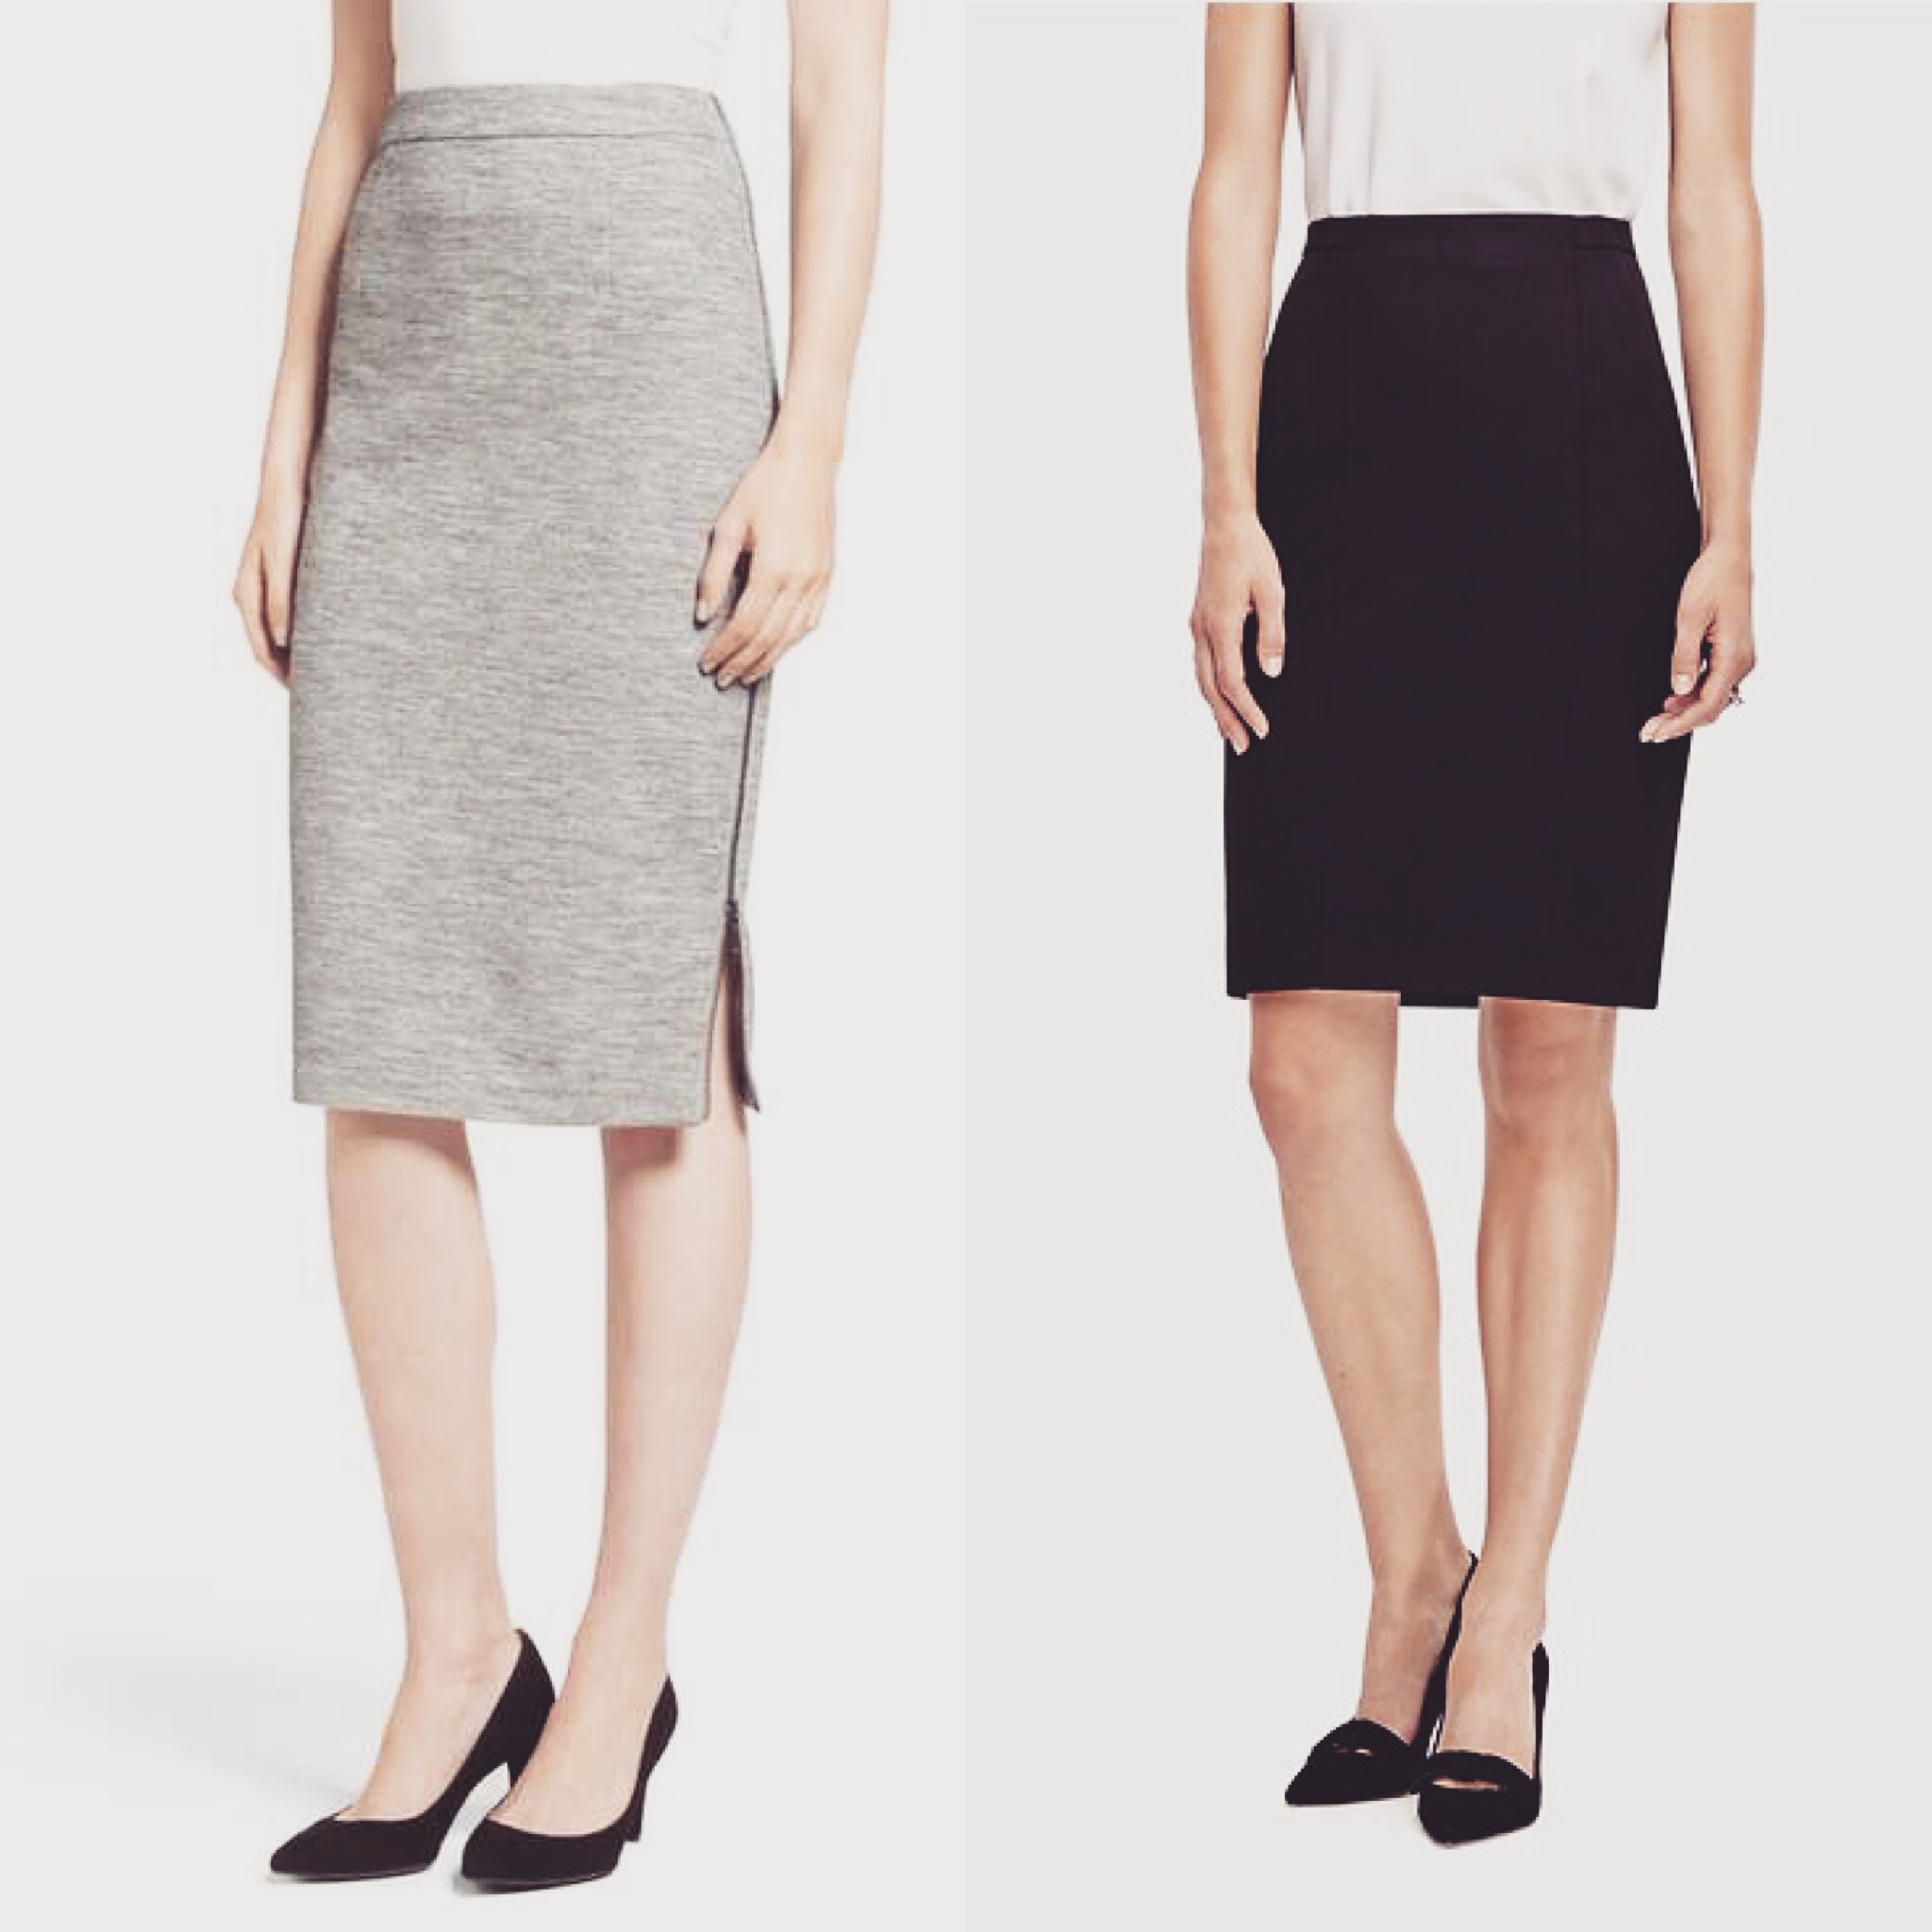 The  grey skirt  is Halogen from Nordstrom; the  black one  is All-Season Stretch Seamed from AT.